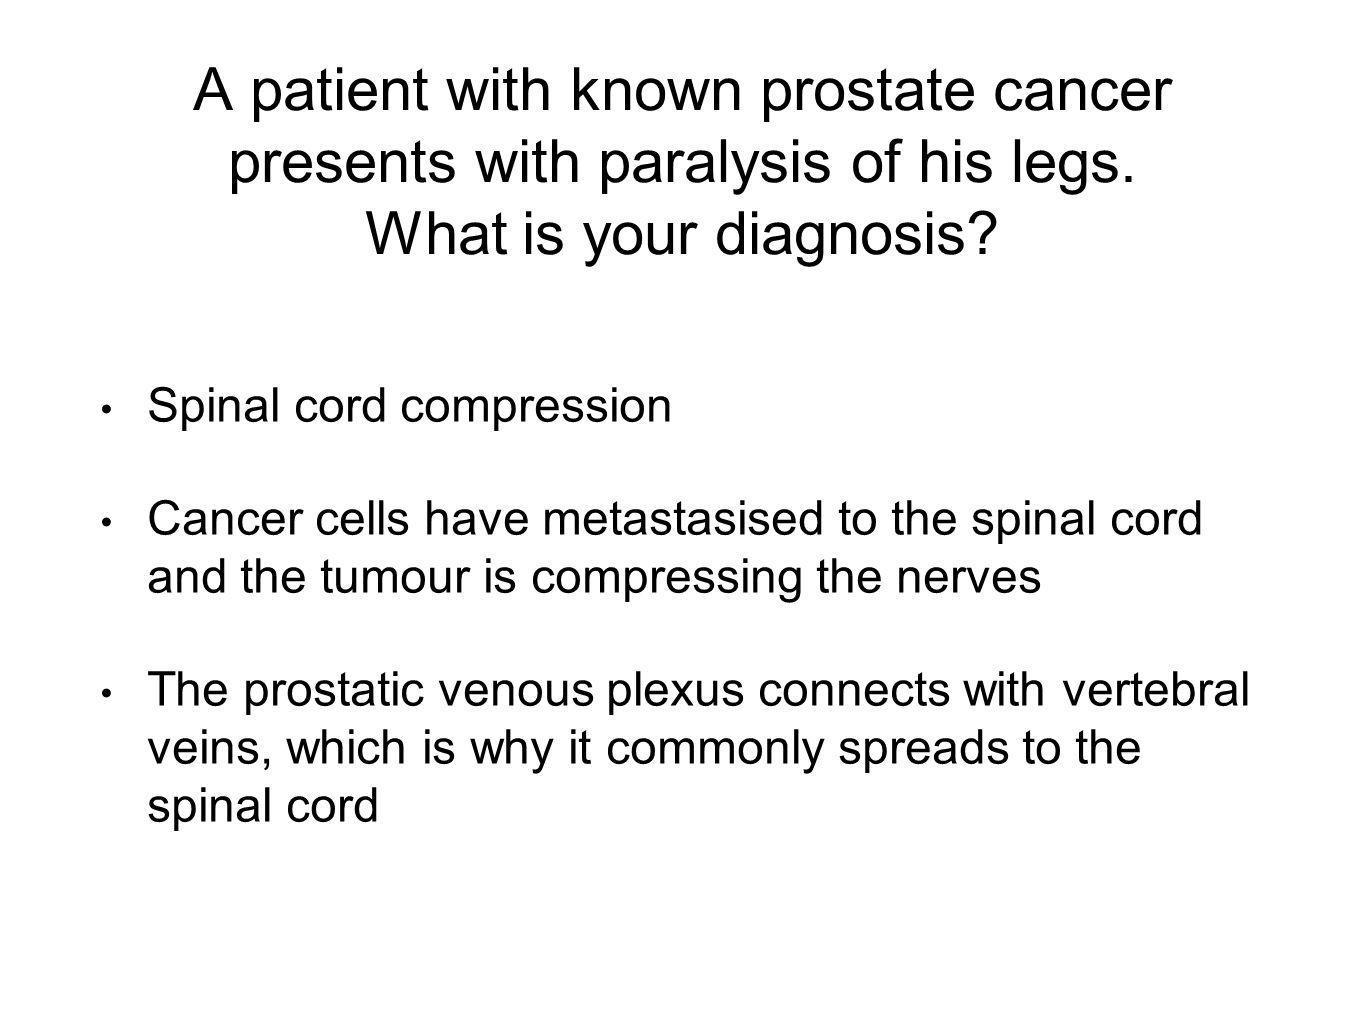 A patient with known prostate cancer presents with paralysis of his legs.